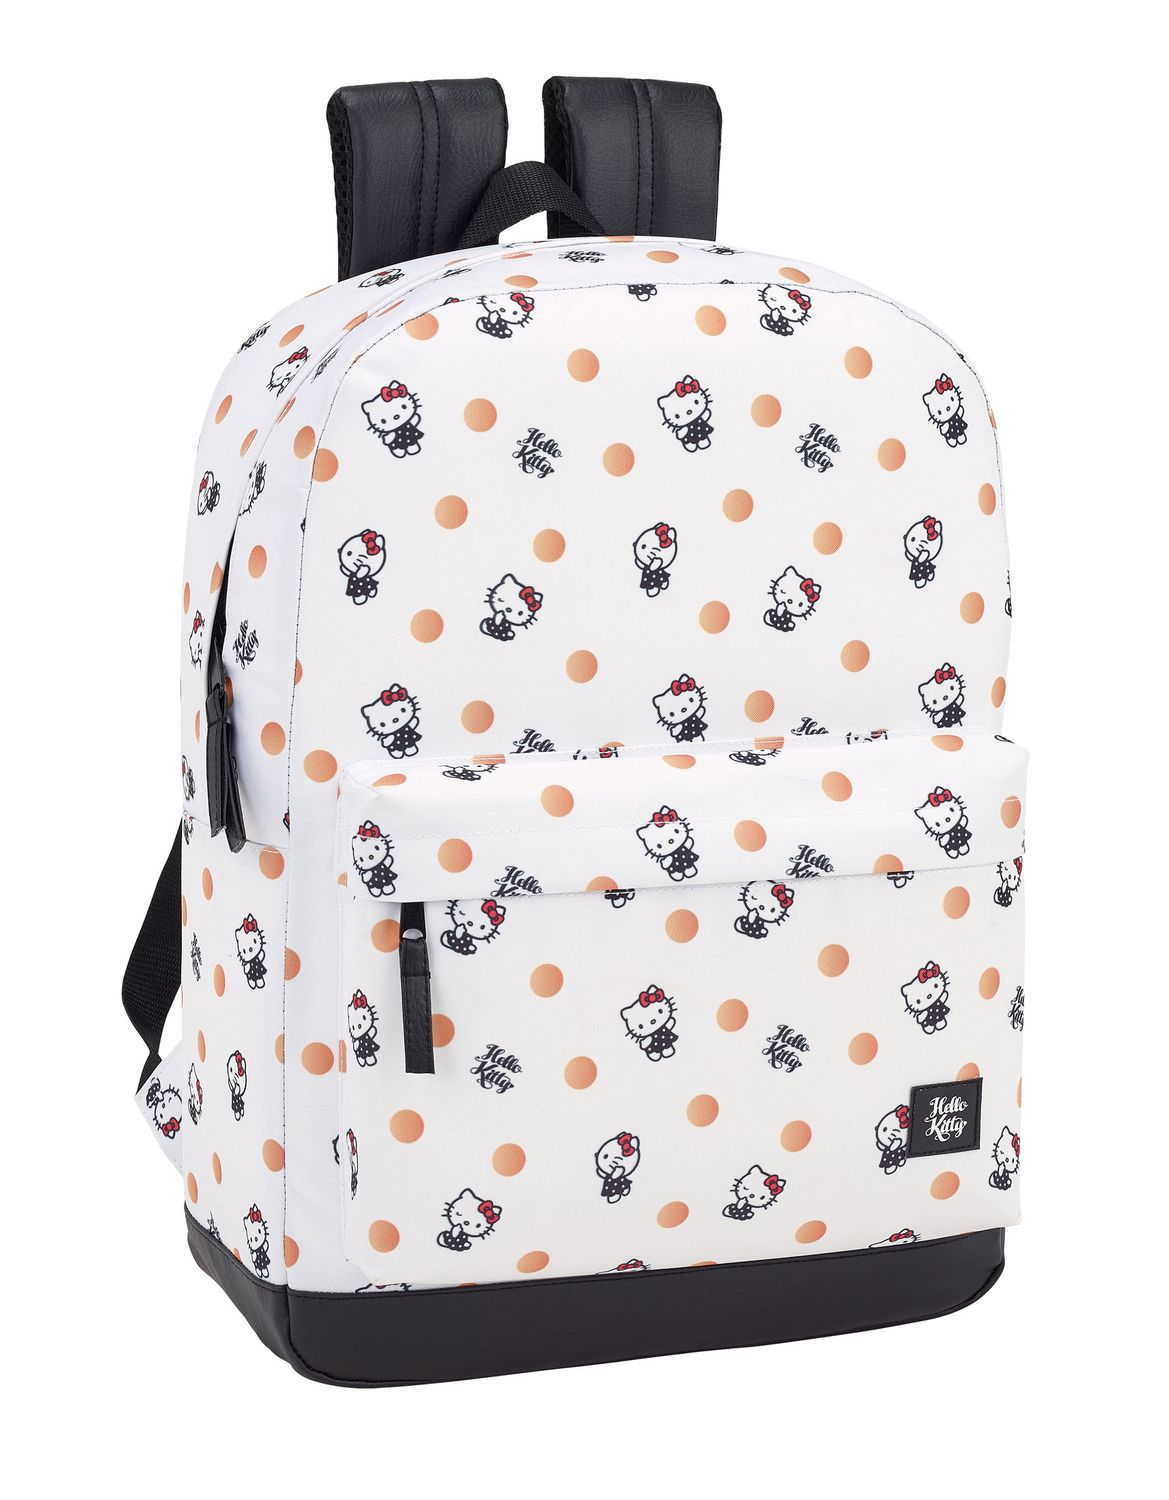 Hello Kitty Polka Dots Laptop Backpack 15.6' – image 1